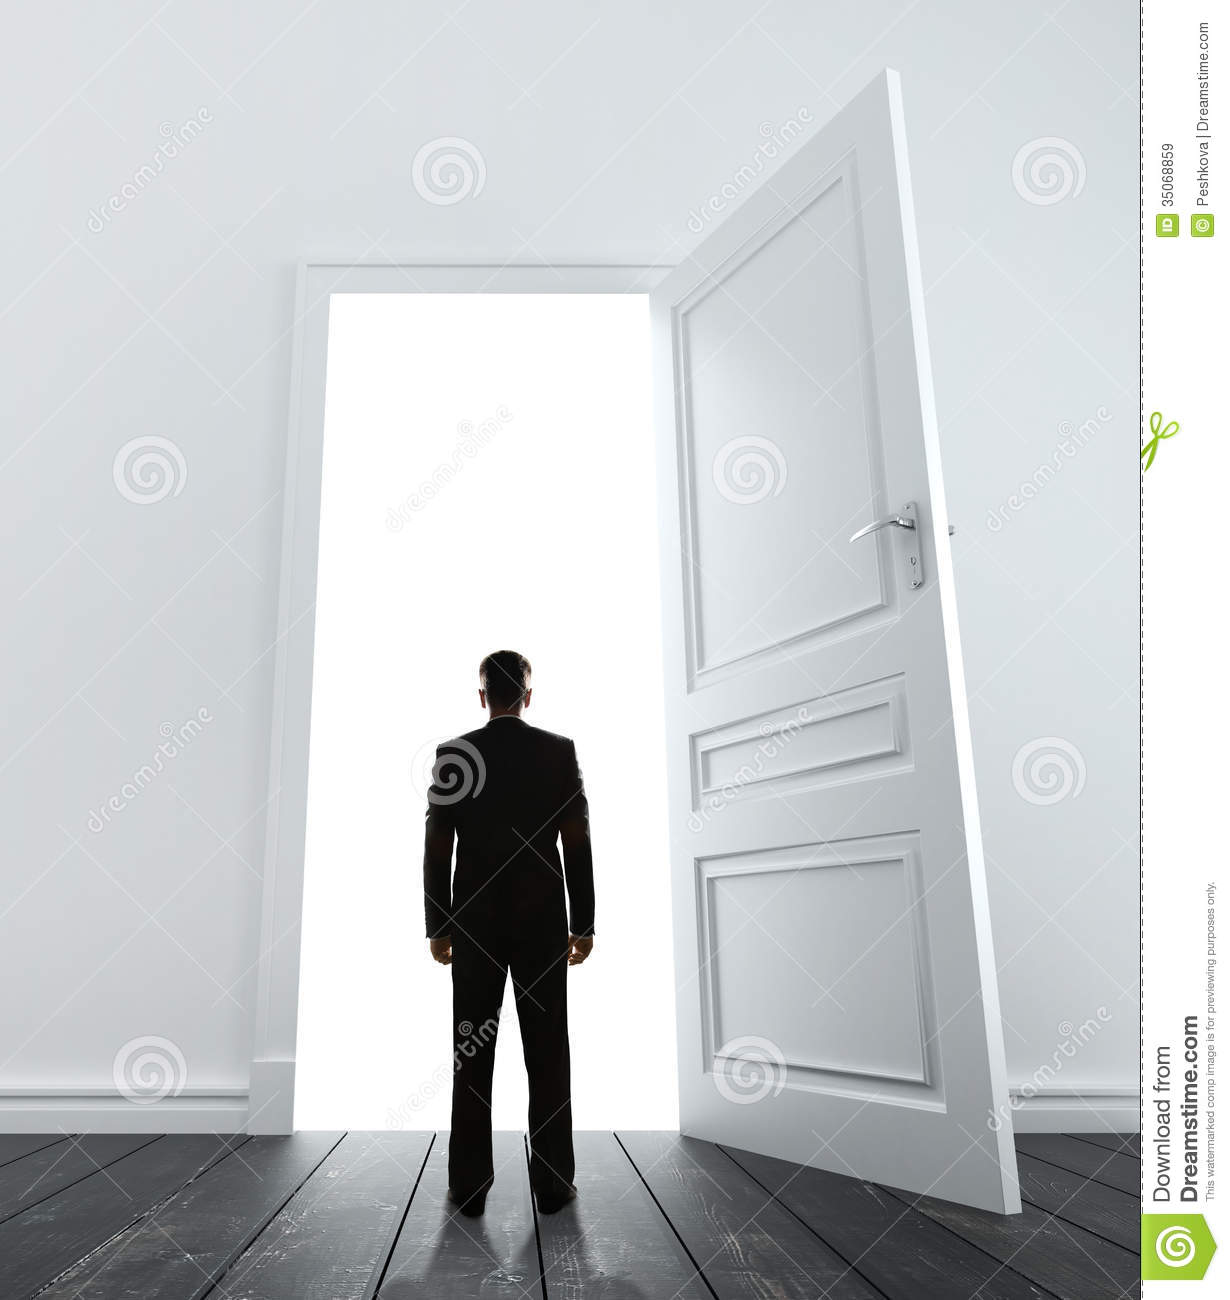 Man And Door Royalty Free Stock Images